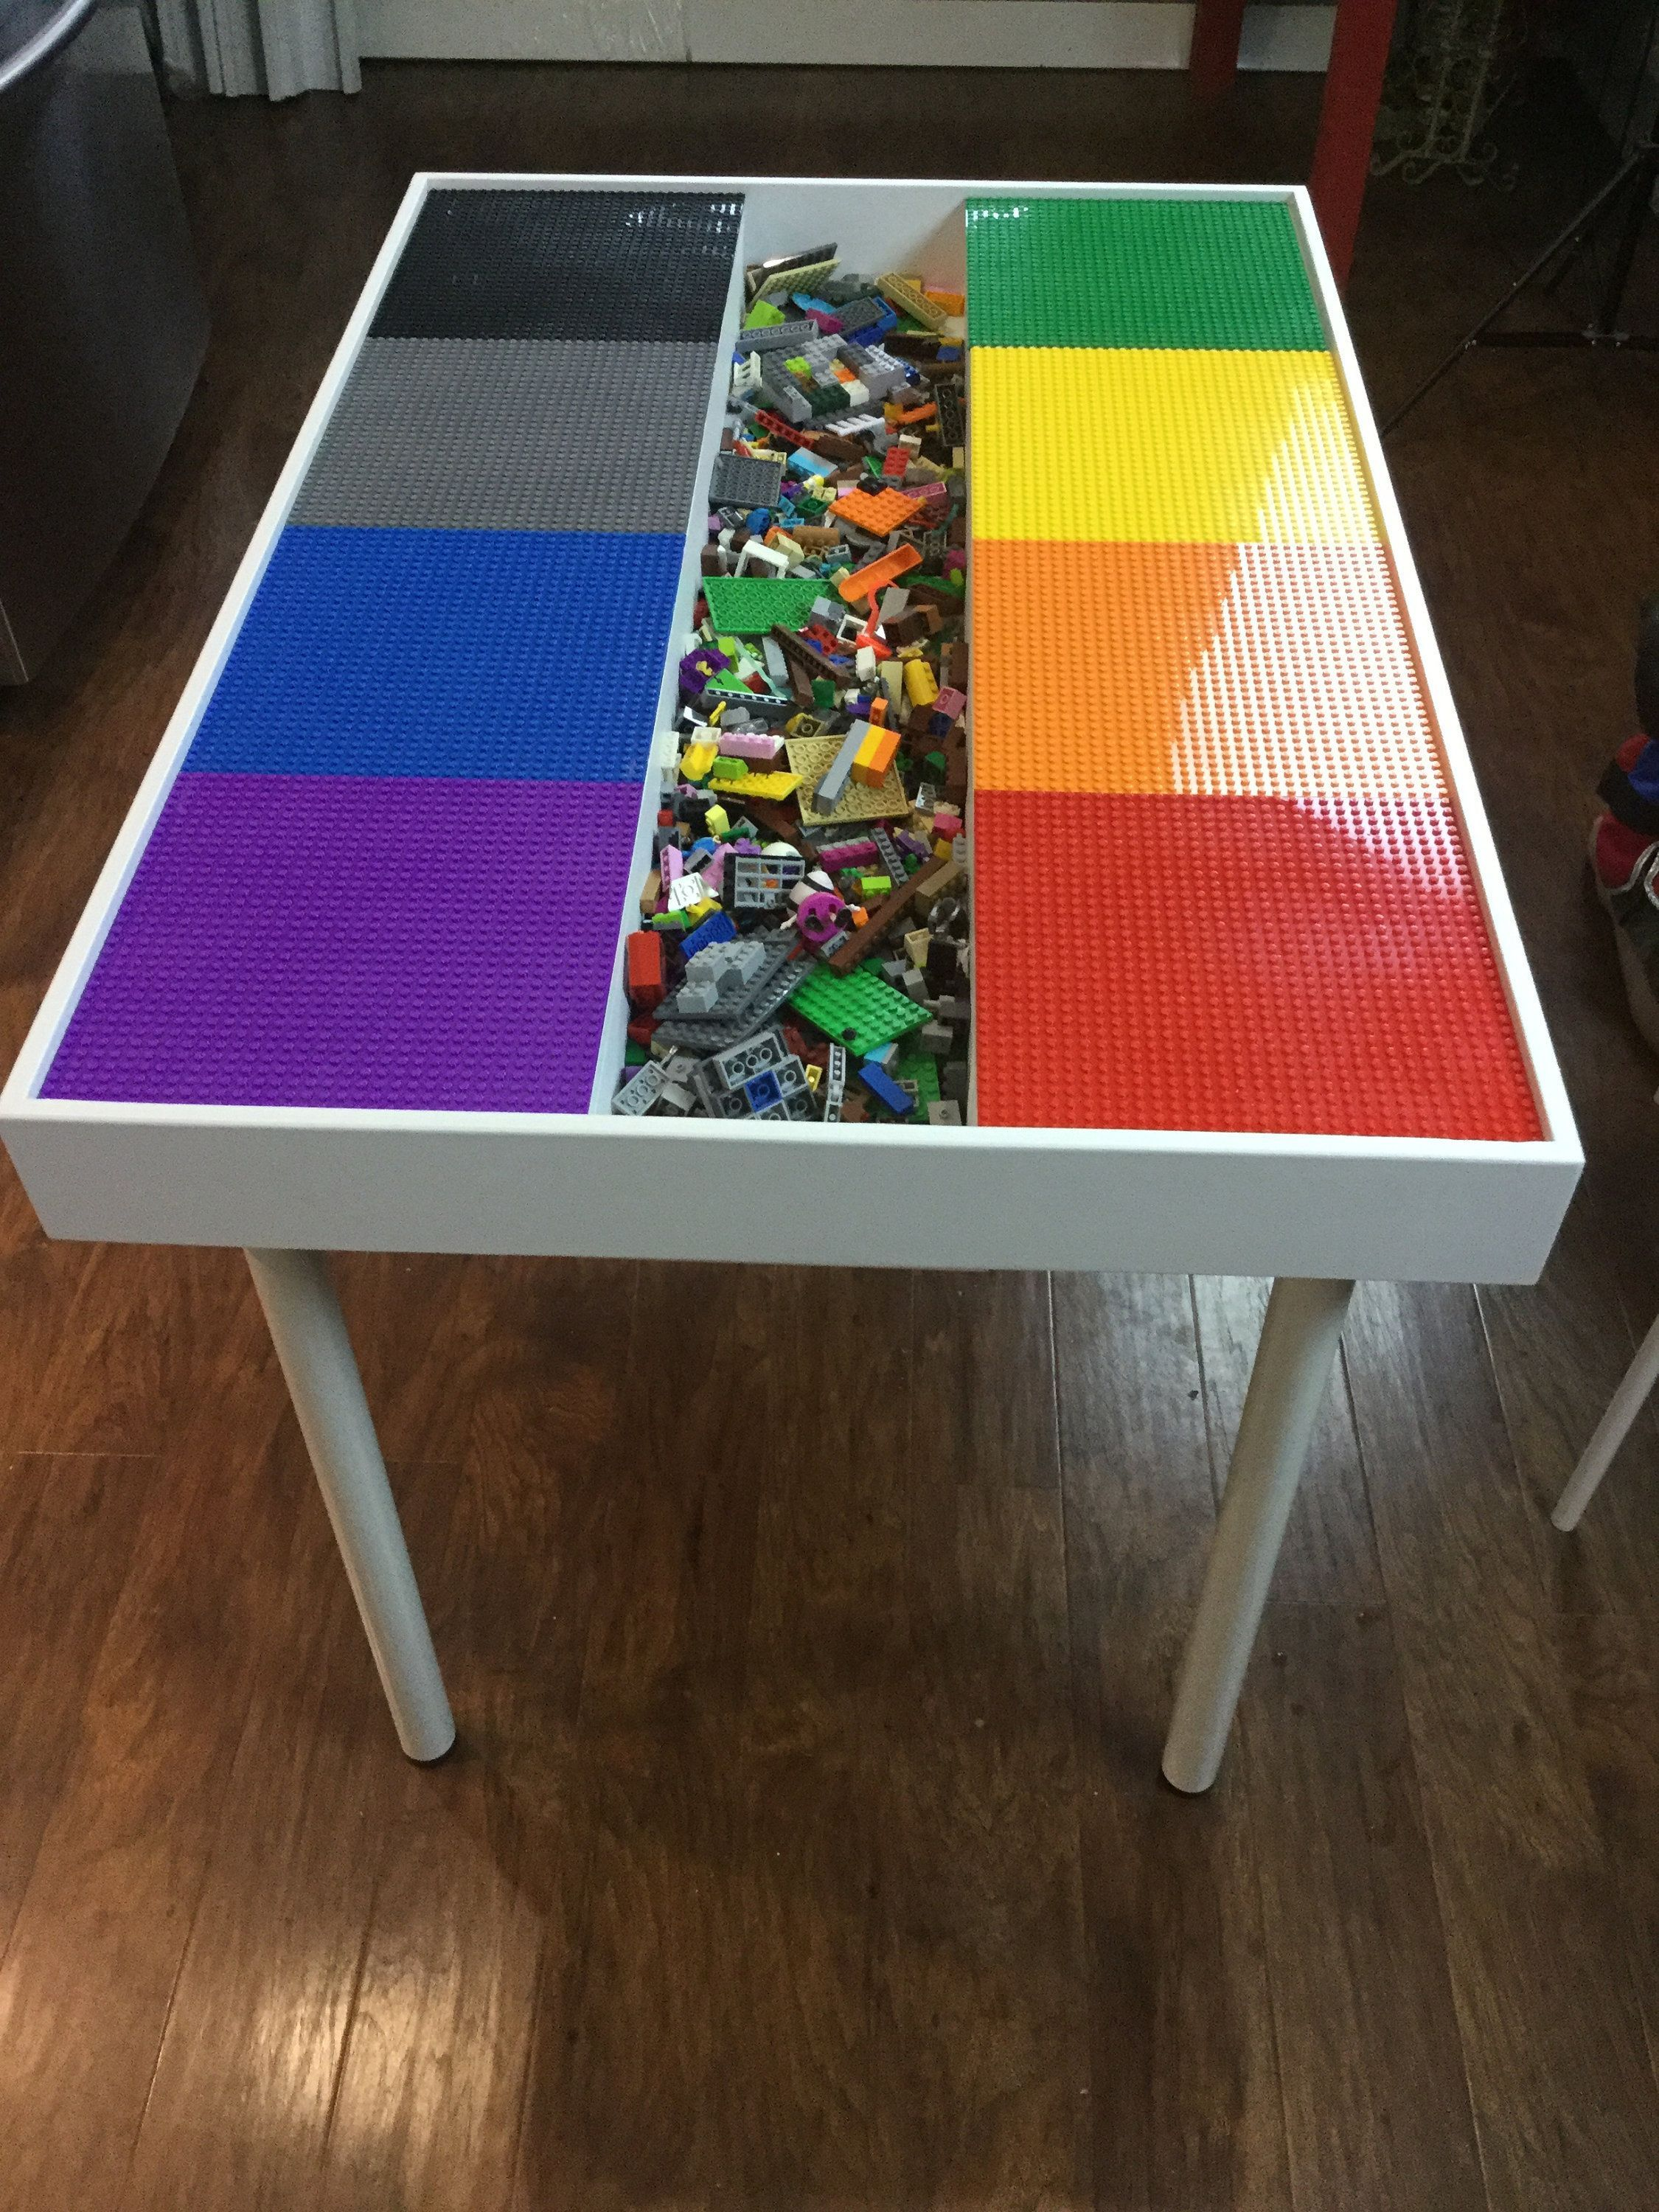 Tall large Building bricks table, kids building blocks table , kids large Lego® Table, activity table, train table, Lego table with storage -  Tall large Building bricks table kids building blocks table   Etsy  - #activity #aftermovie #afterschoolroutine #afterschoolsnacks #afterwecollided #afterworkoutfood #blocks #Bricks #building #kids #Large #Lego #storage #table #tall #train